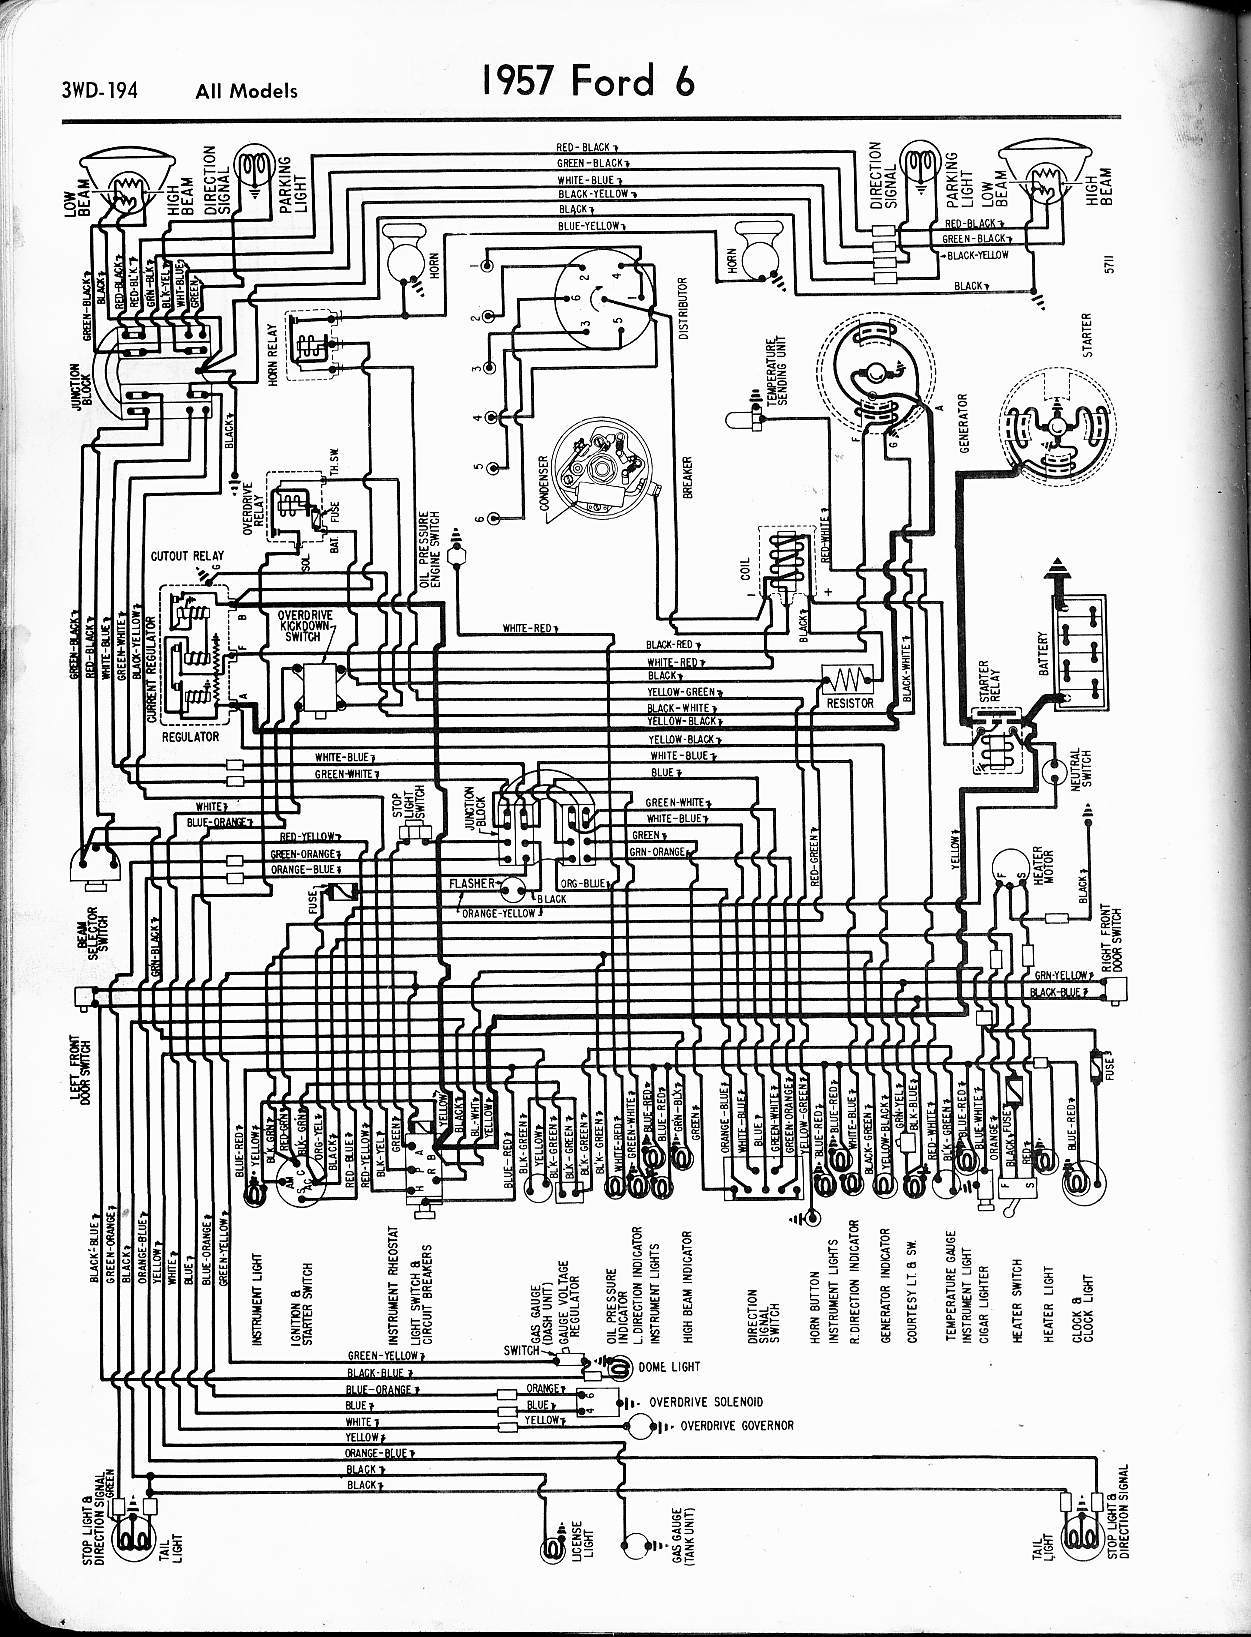 80 2010_07_23_013626_1957_ford_wiring_451fe1d3aafe571893763e4bcbb92521b2870e9d wiring diagram for 1972 ford f100 the wiring diagram 1946 ford truck wiring diagram at bayanpartner.co